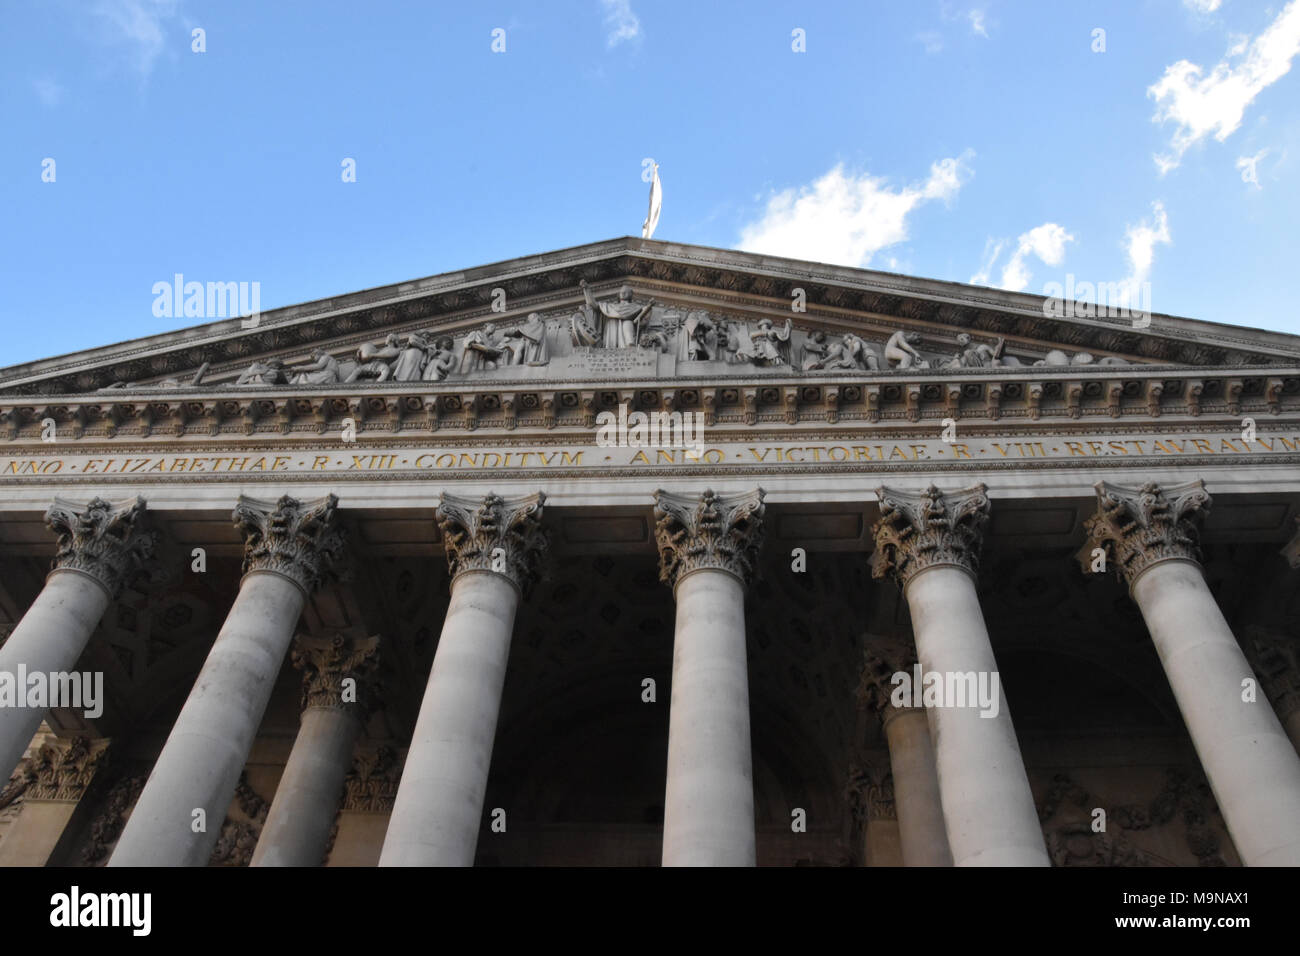 Front Facade of the Royal Exchange in the City of London. The current building was opened on October 28th, 1844. - Stock Image